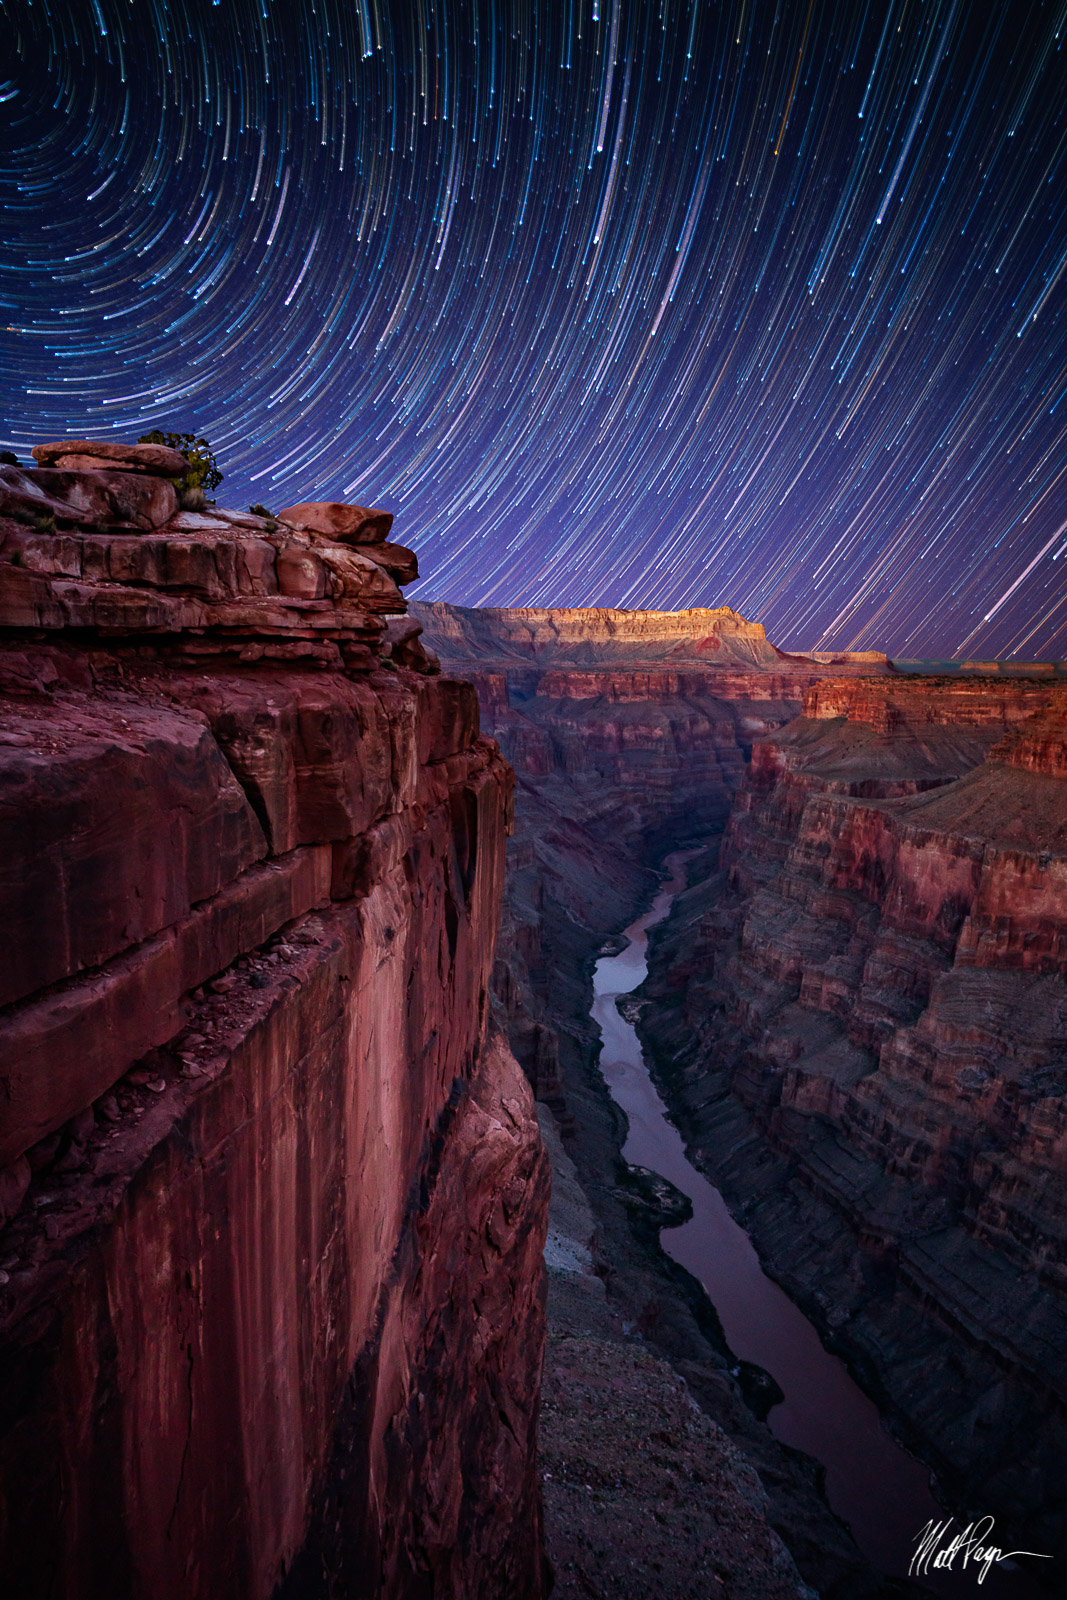 Arizona, Astro-landscape, Colorado River, Grand Canyon, Landscape, Night, Nightscape, Rock, Southwest, Spring, Star Trails, Stars, Toroweap, astrophotography, canyon wall, desert, meteoric, photo